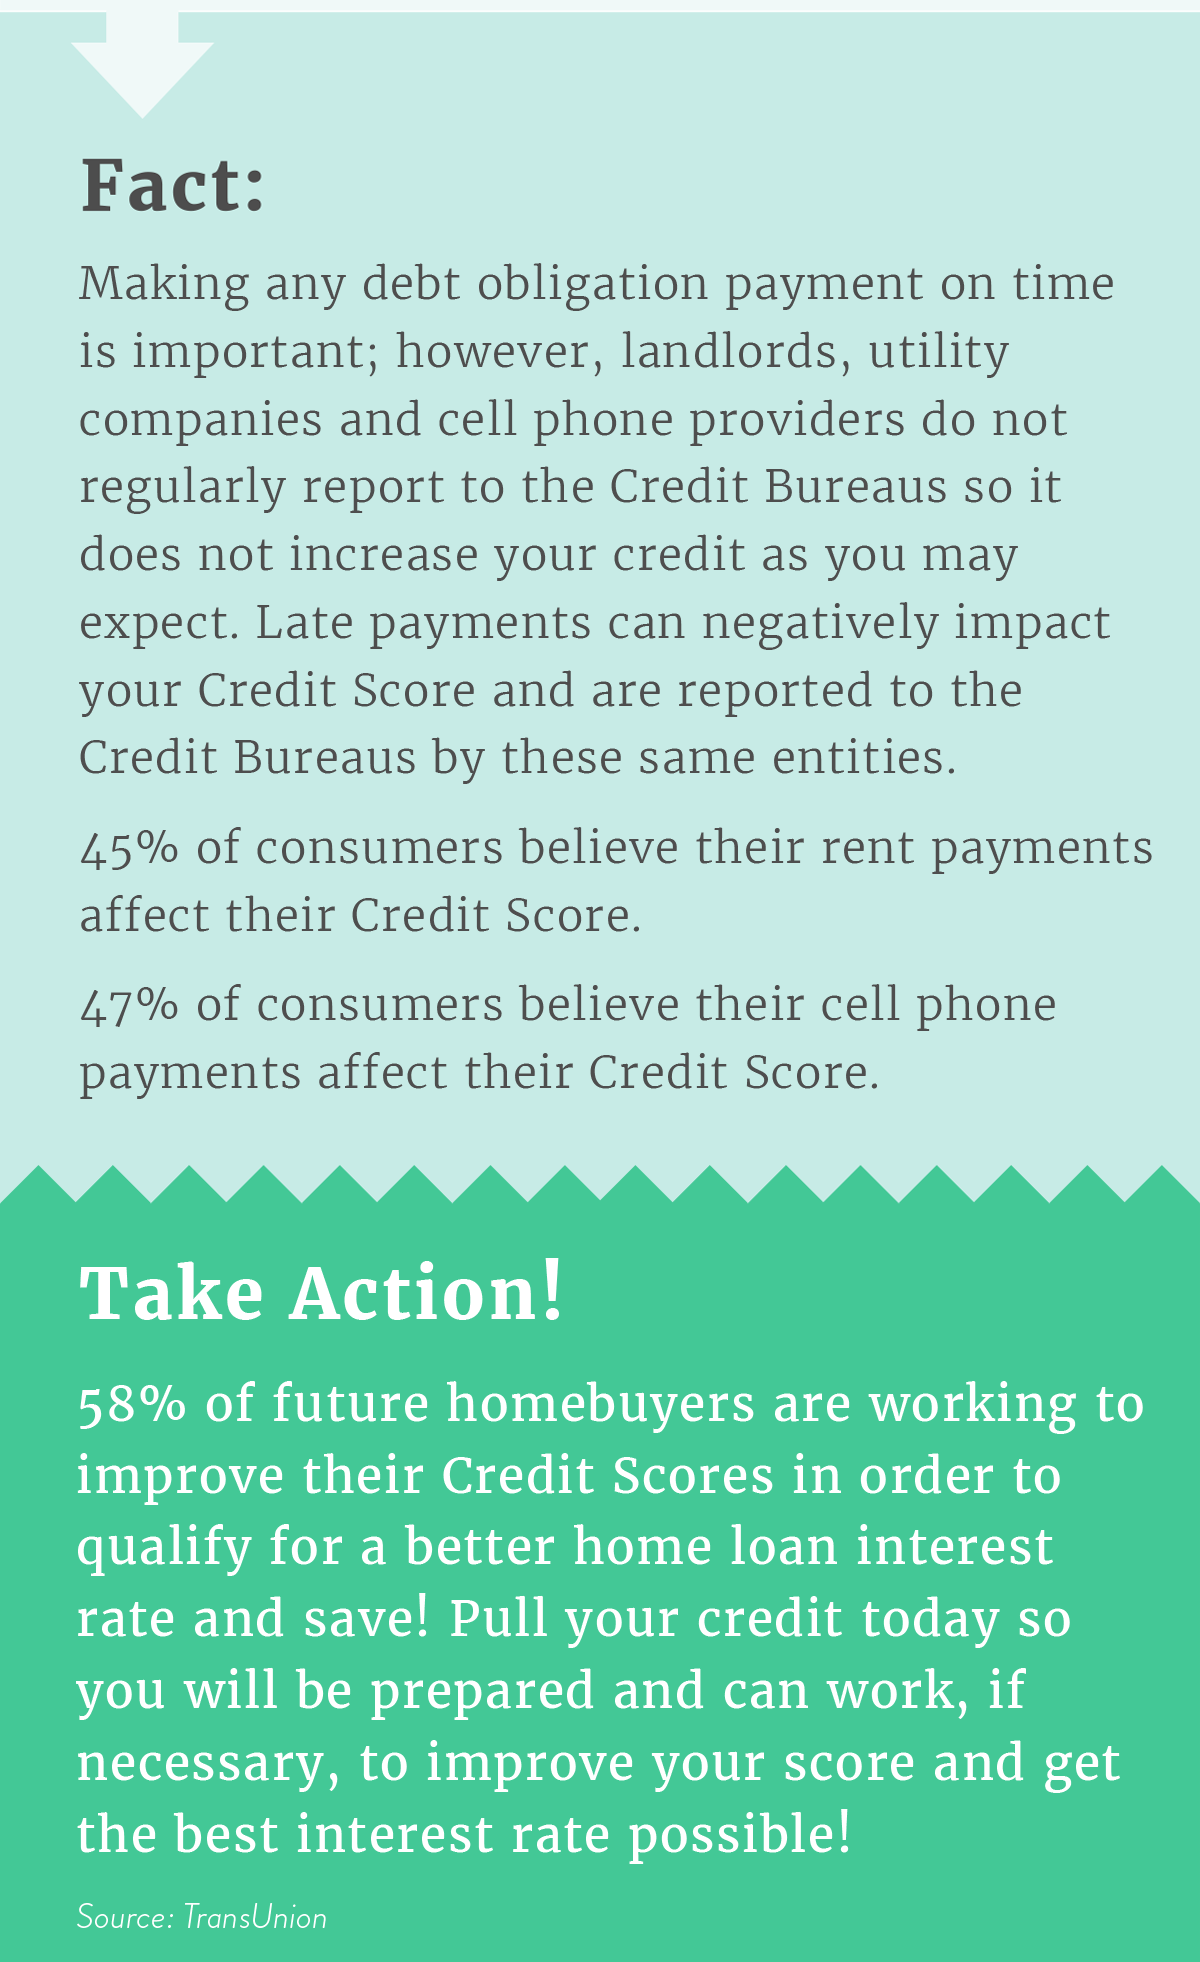 Myth 5: Making on-time rent, utility and cell phone payments helps your Credit Score.